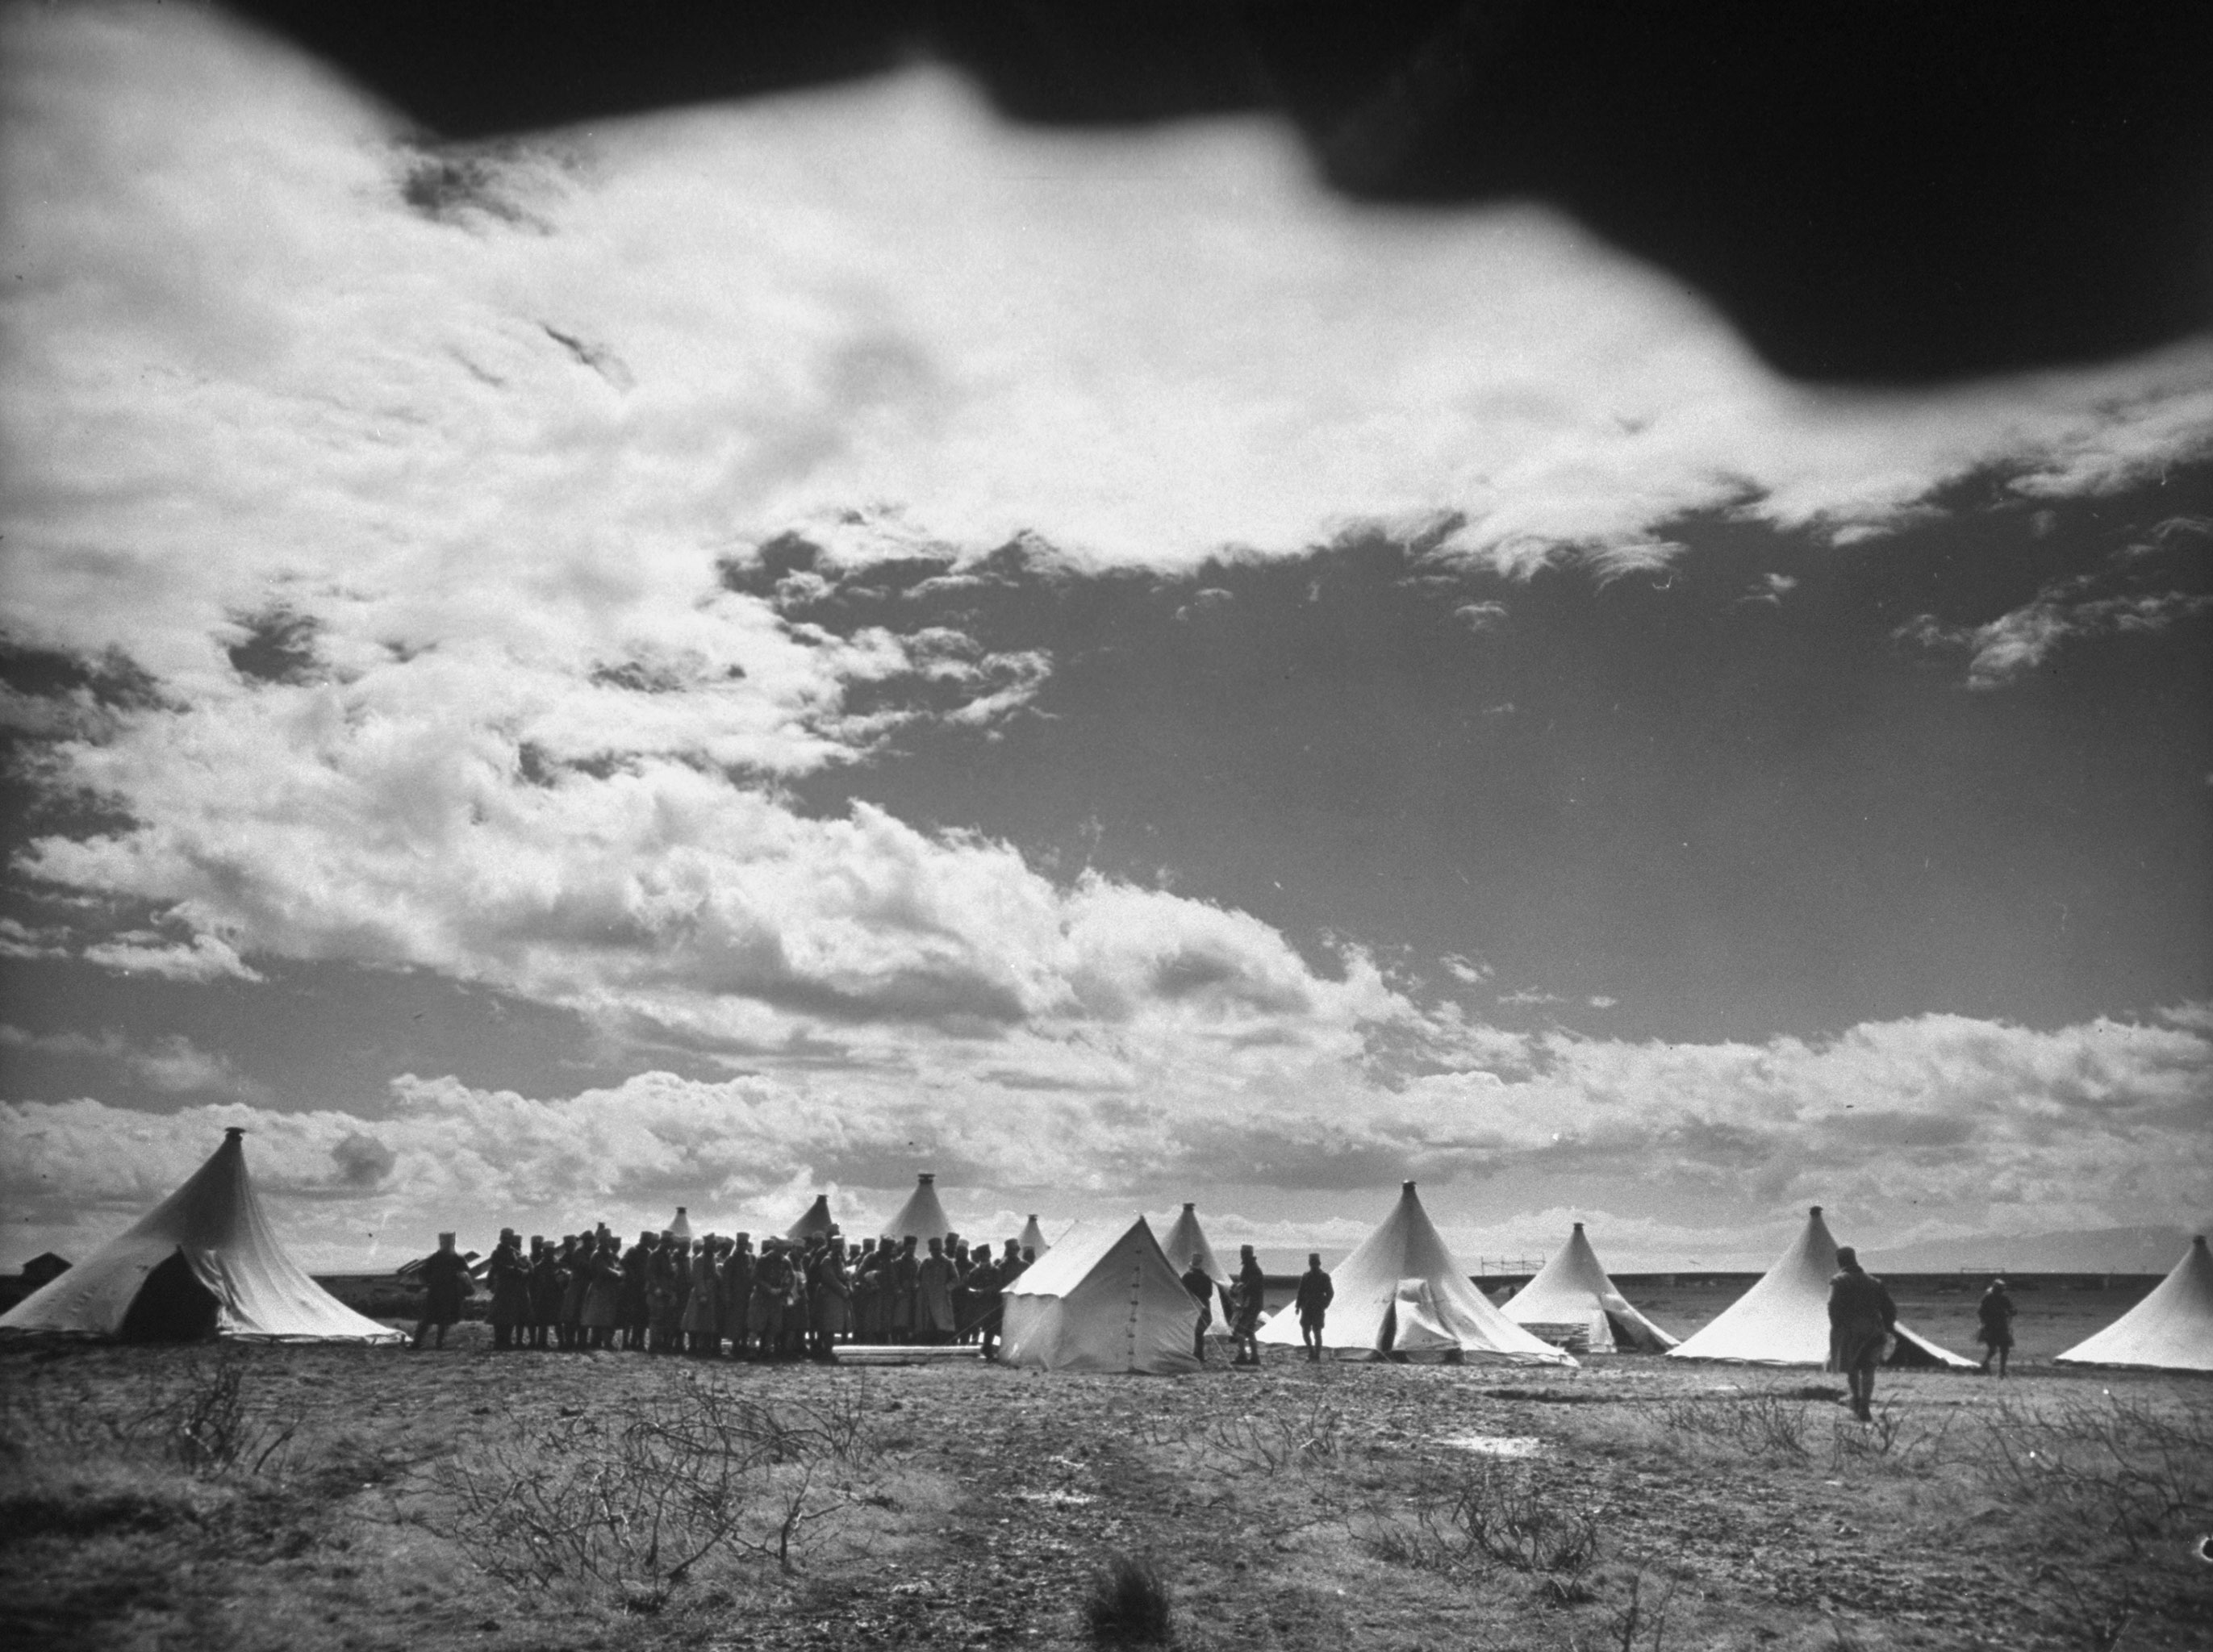 French Foreign Legion soldiers gather around newly erected tents as they set up their outpost near Homs, Syria, 1940.